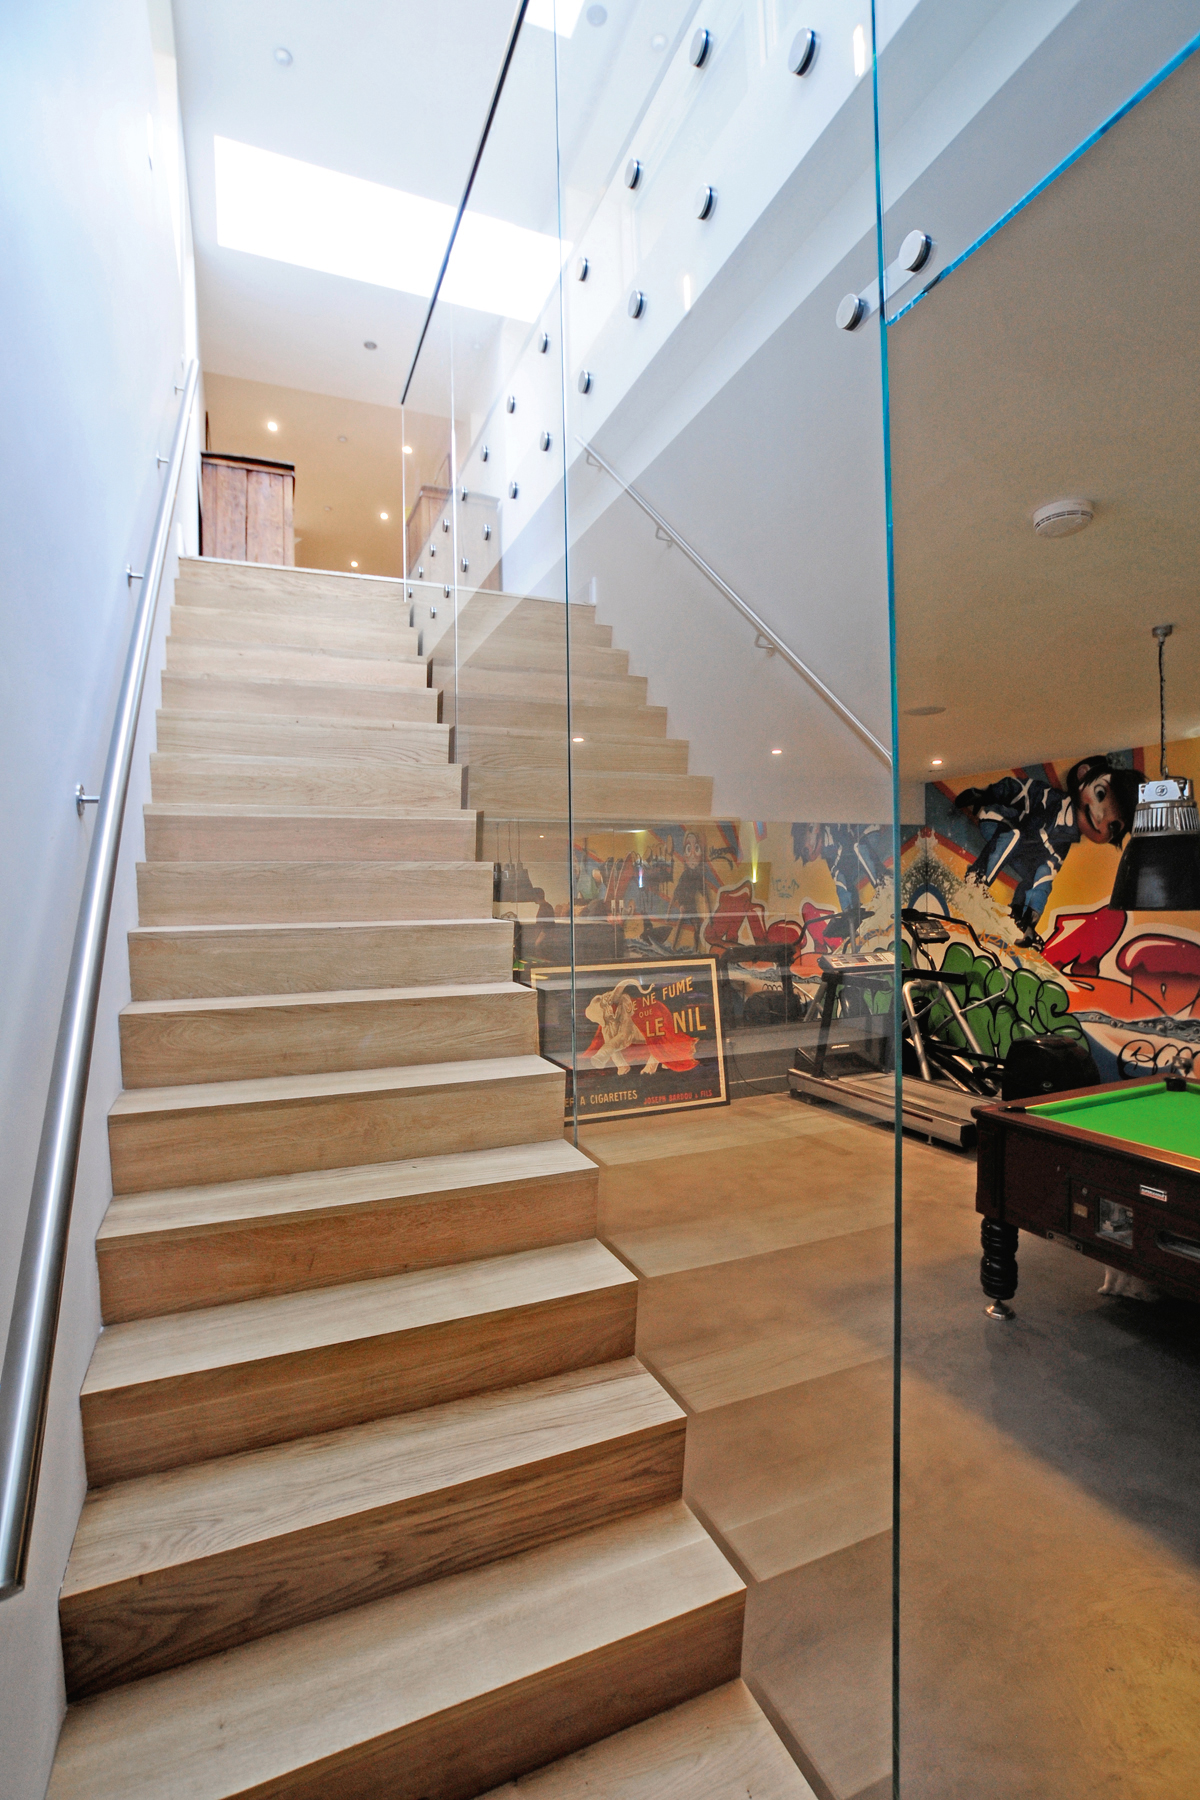 Glass balustrade on staircase leading to basement